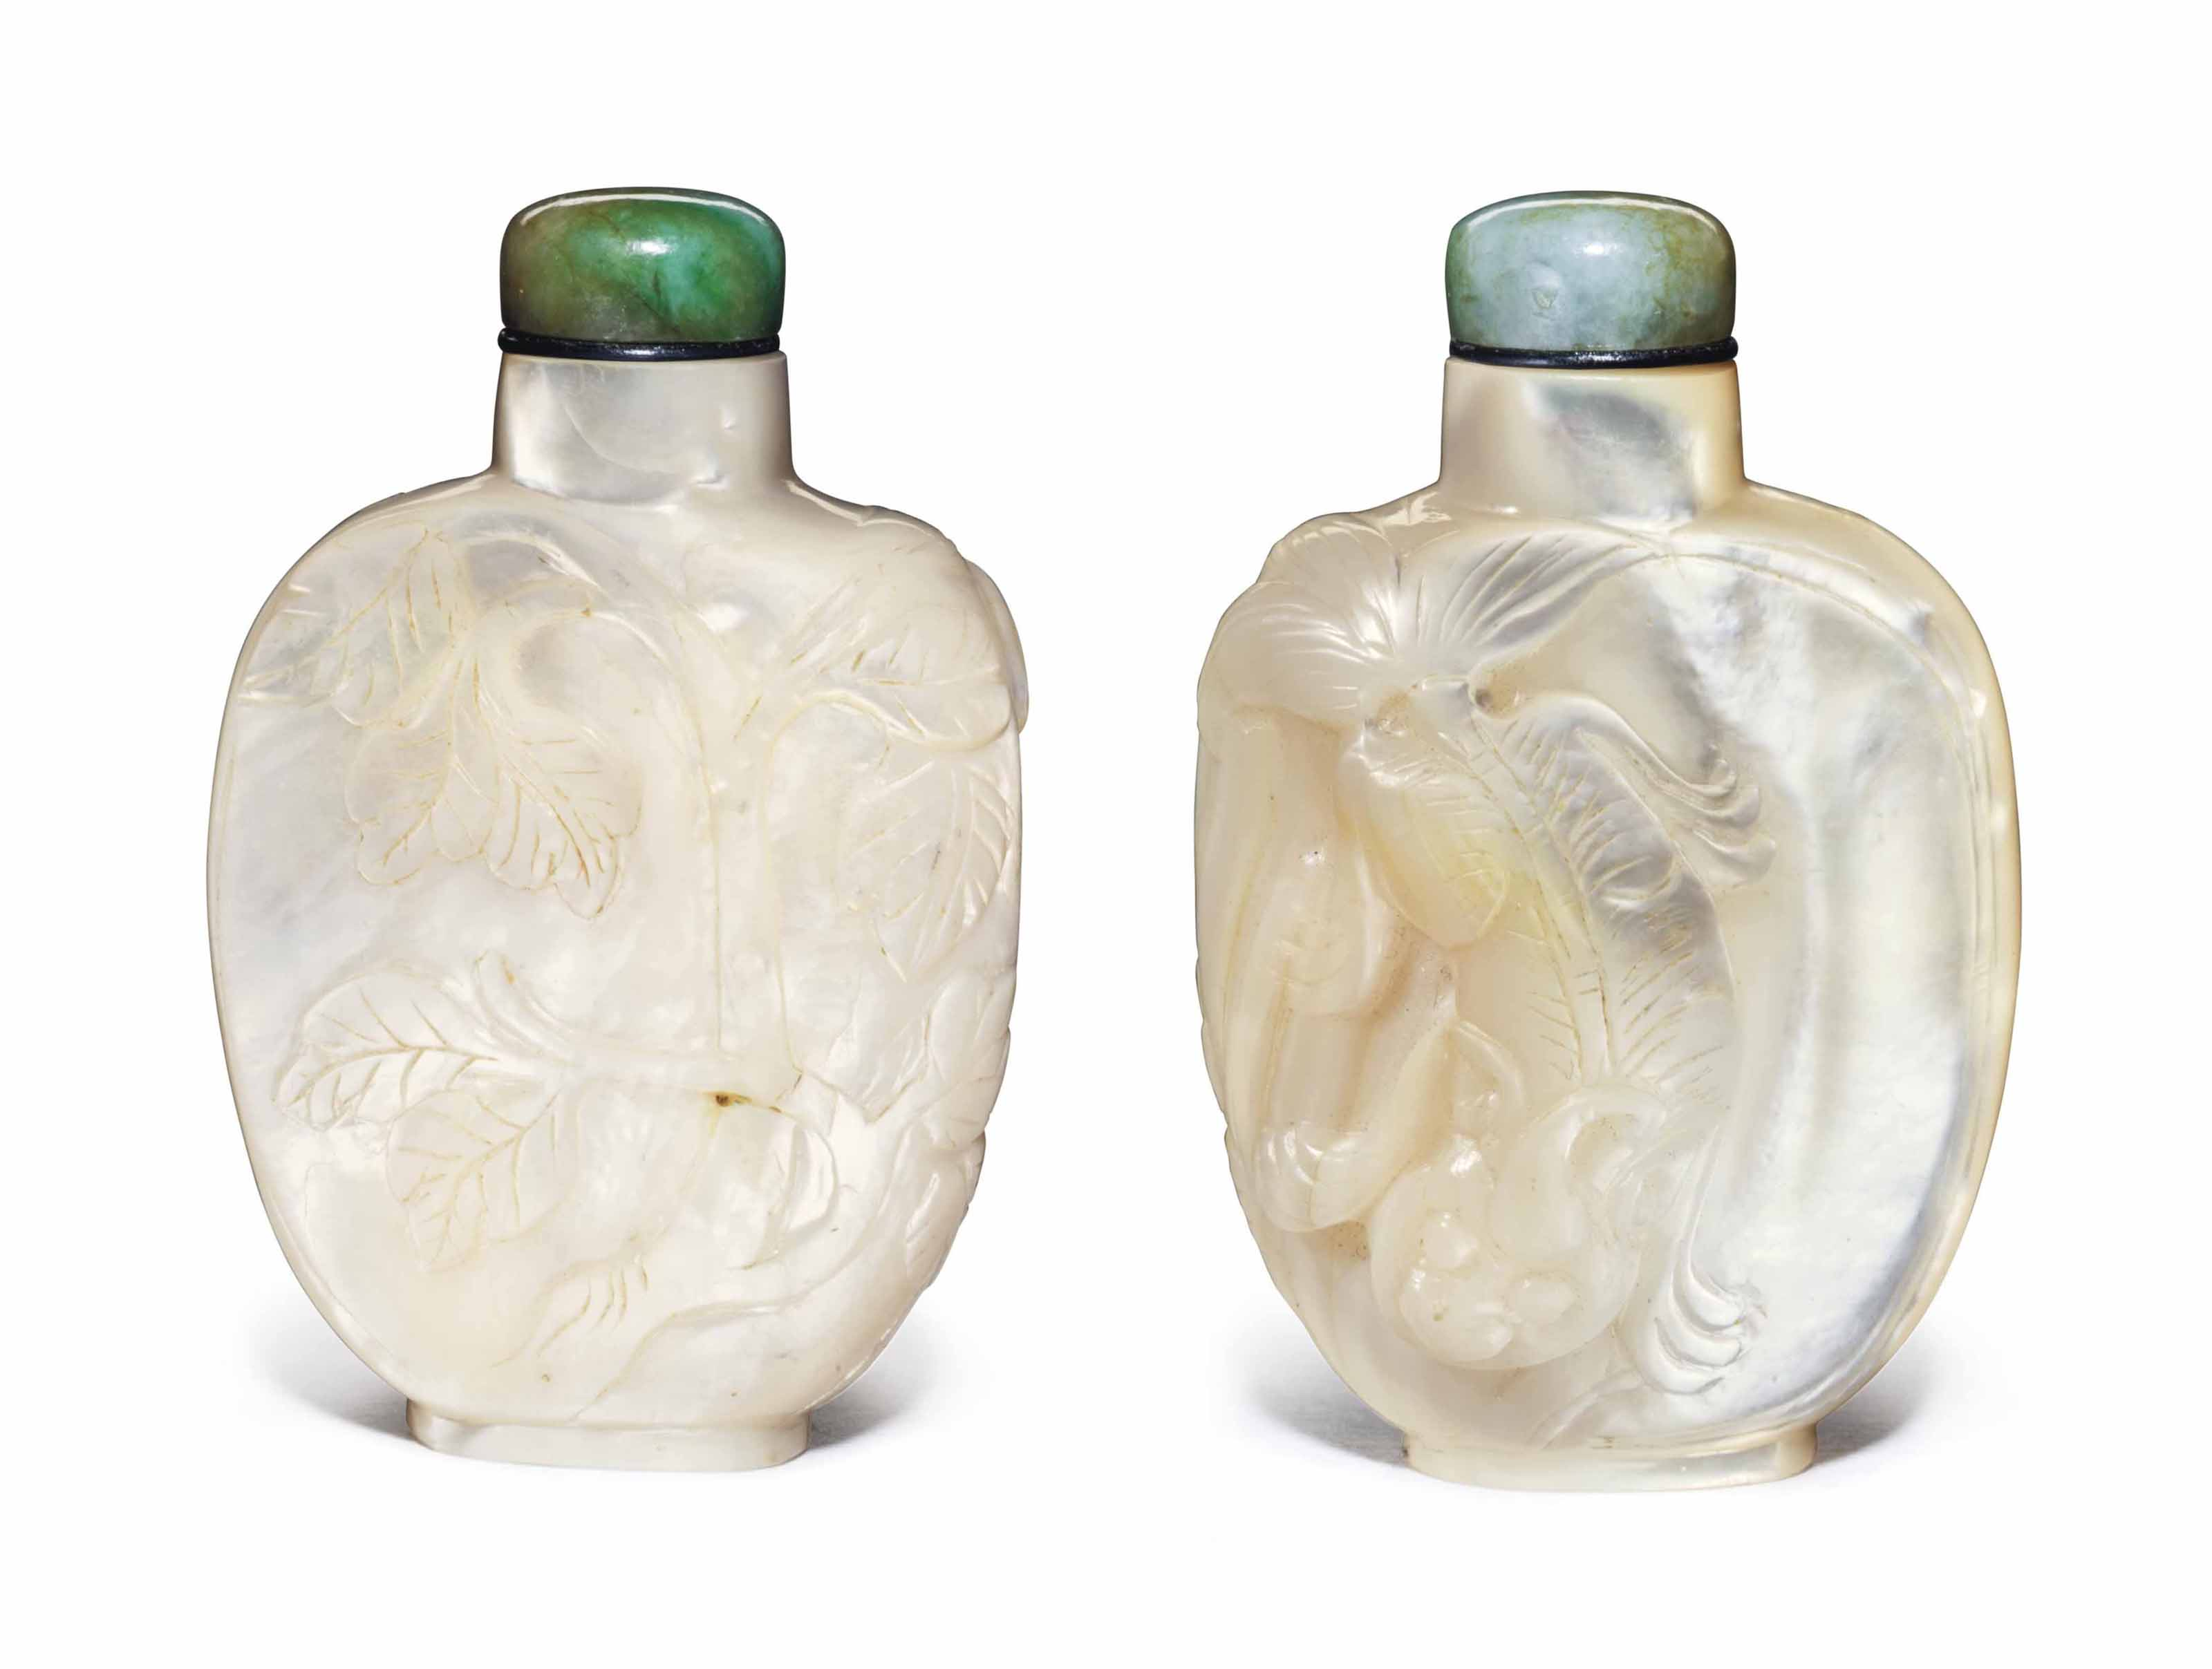 A CARVED MOTHER-OF-PEARL SNUFF BOTTLE